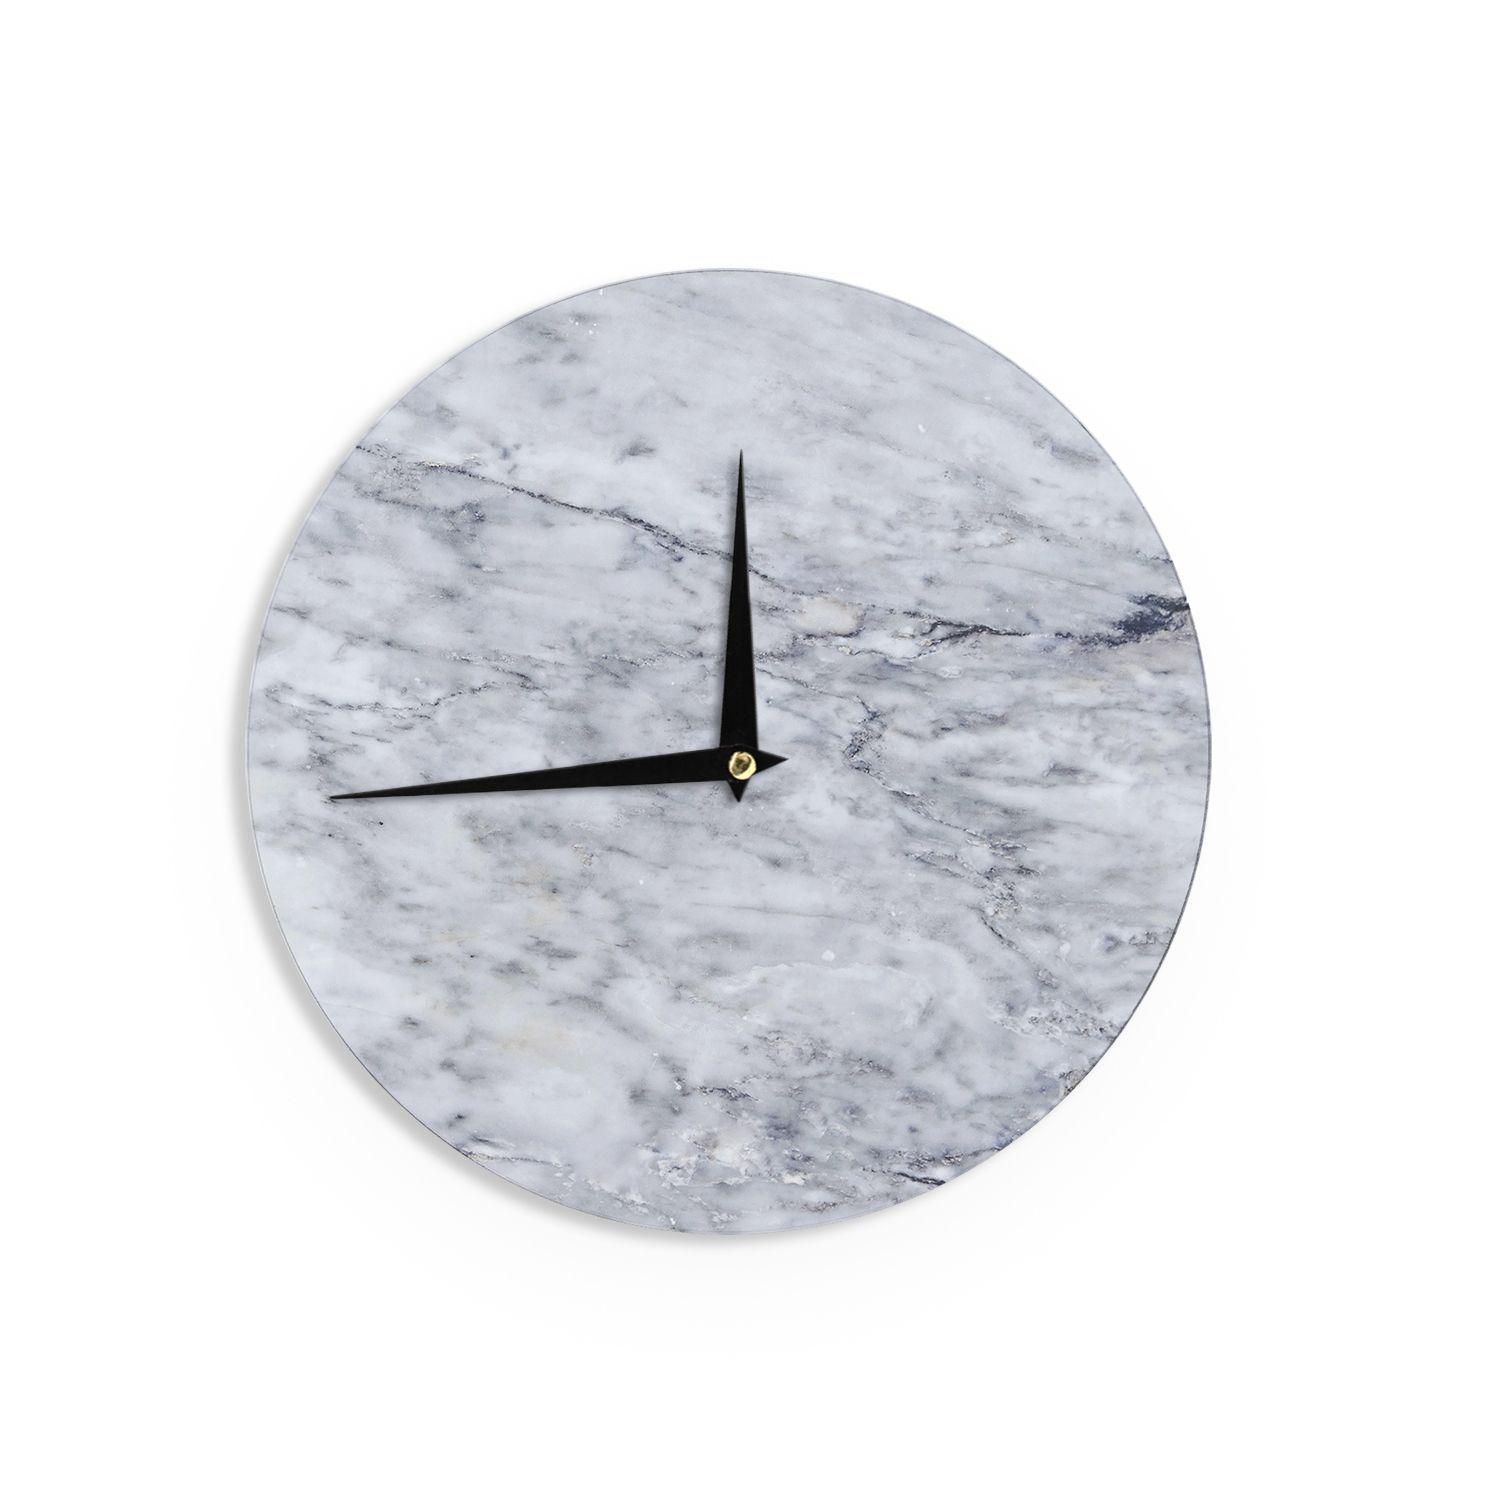 Kess inhouse chelsea victoria marble blue black wall clock kess inhouse chelsea victoria marble black wall clock amipublicfo Image collections